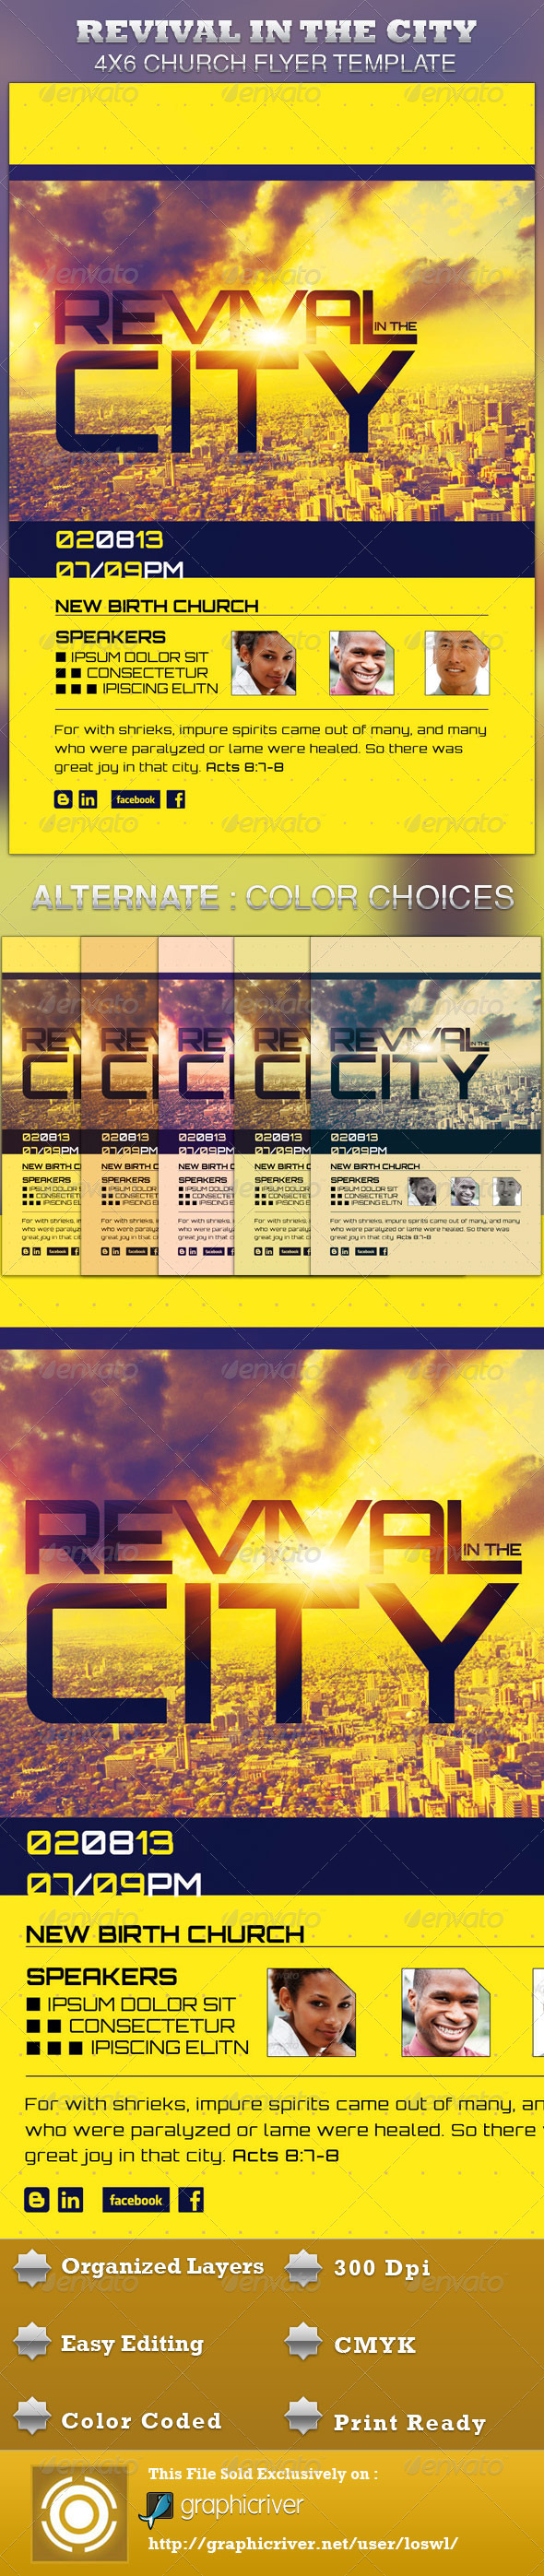 Revival in the City Church Flyer Template - Church Flyers